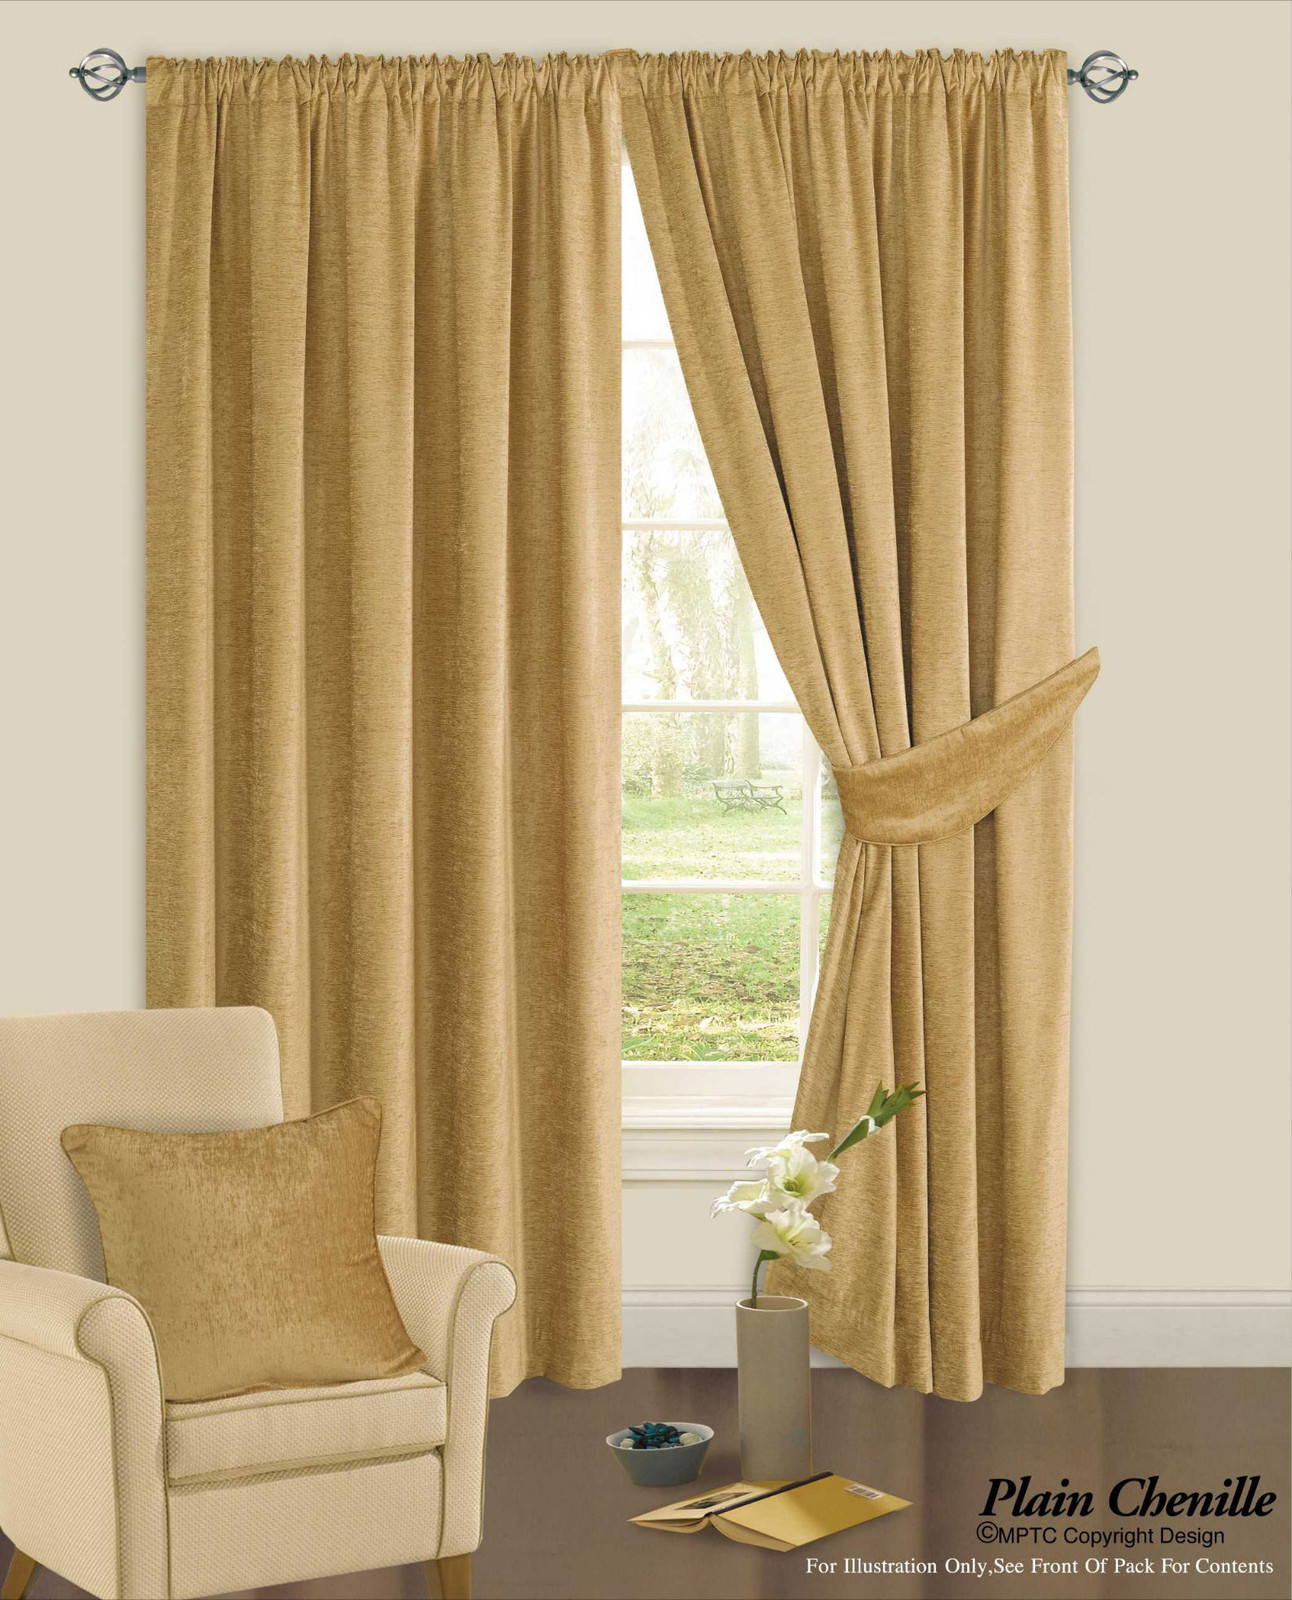 ready curtains curtain elmwood made curtina oldrids downtown